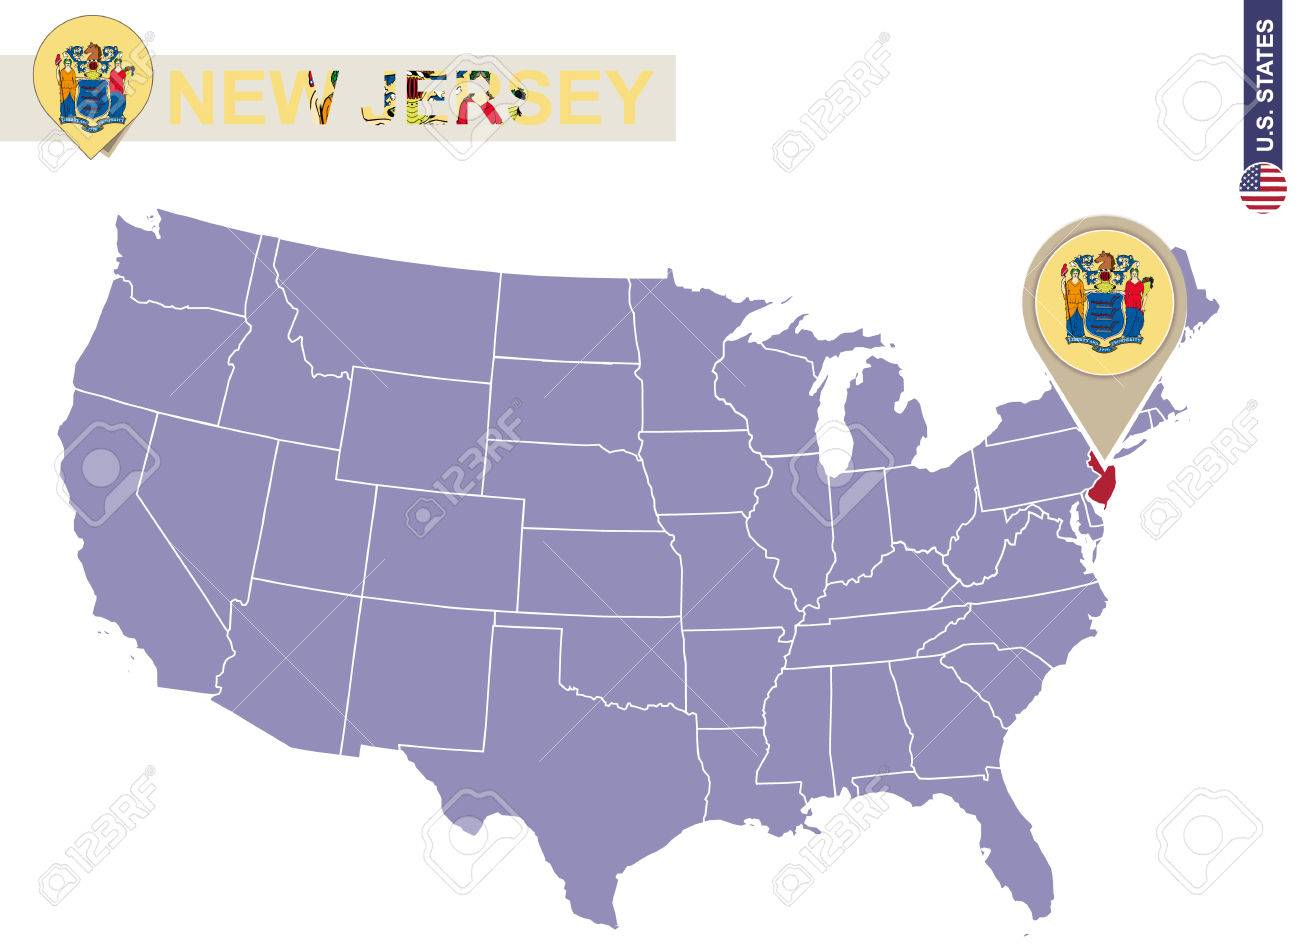 New Jersey On Us Map New Jersey State On USA Map. New Jersey Flag And Map. US States